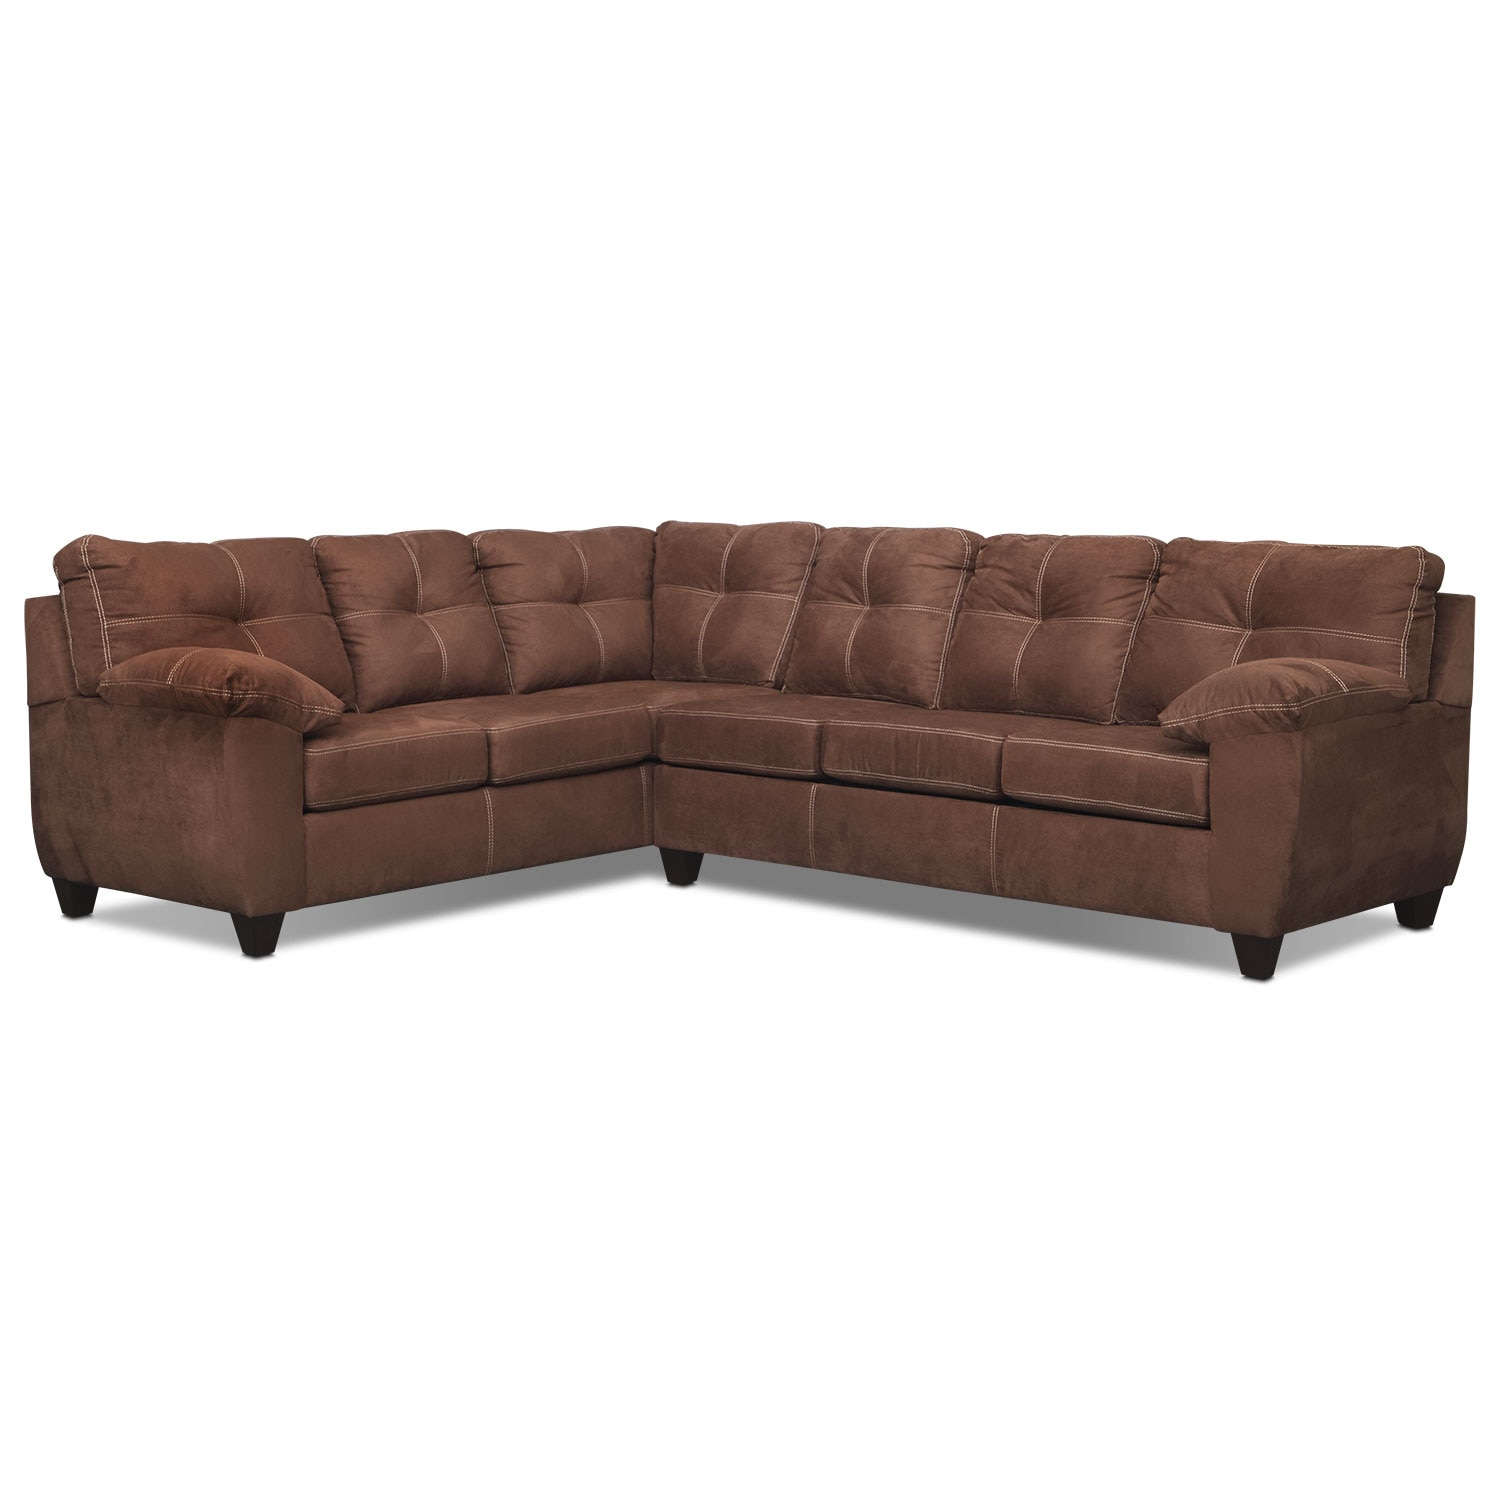 Living Room Furniture - Rialto Coffee 2 Pc. Sectional with Right-Facing Memory Foam Sleeper